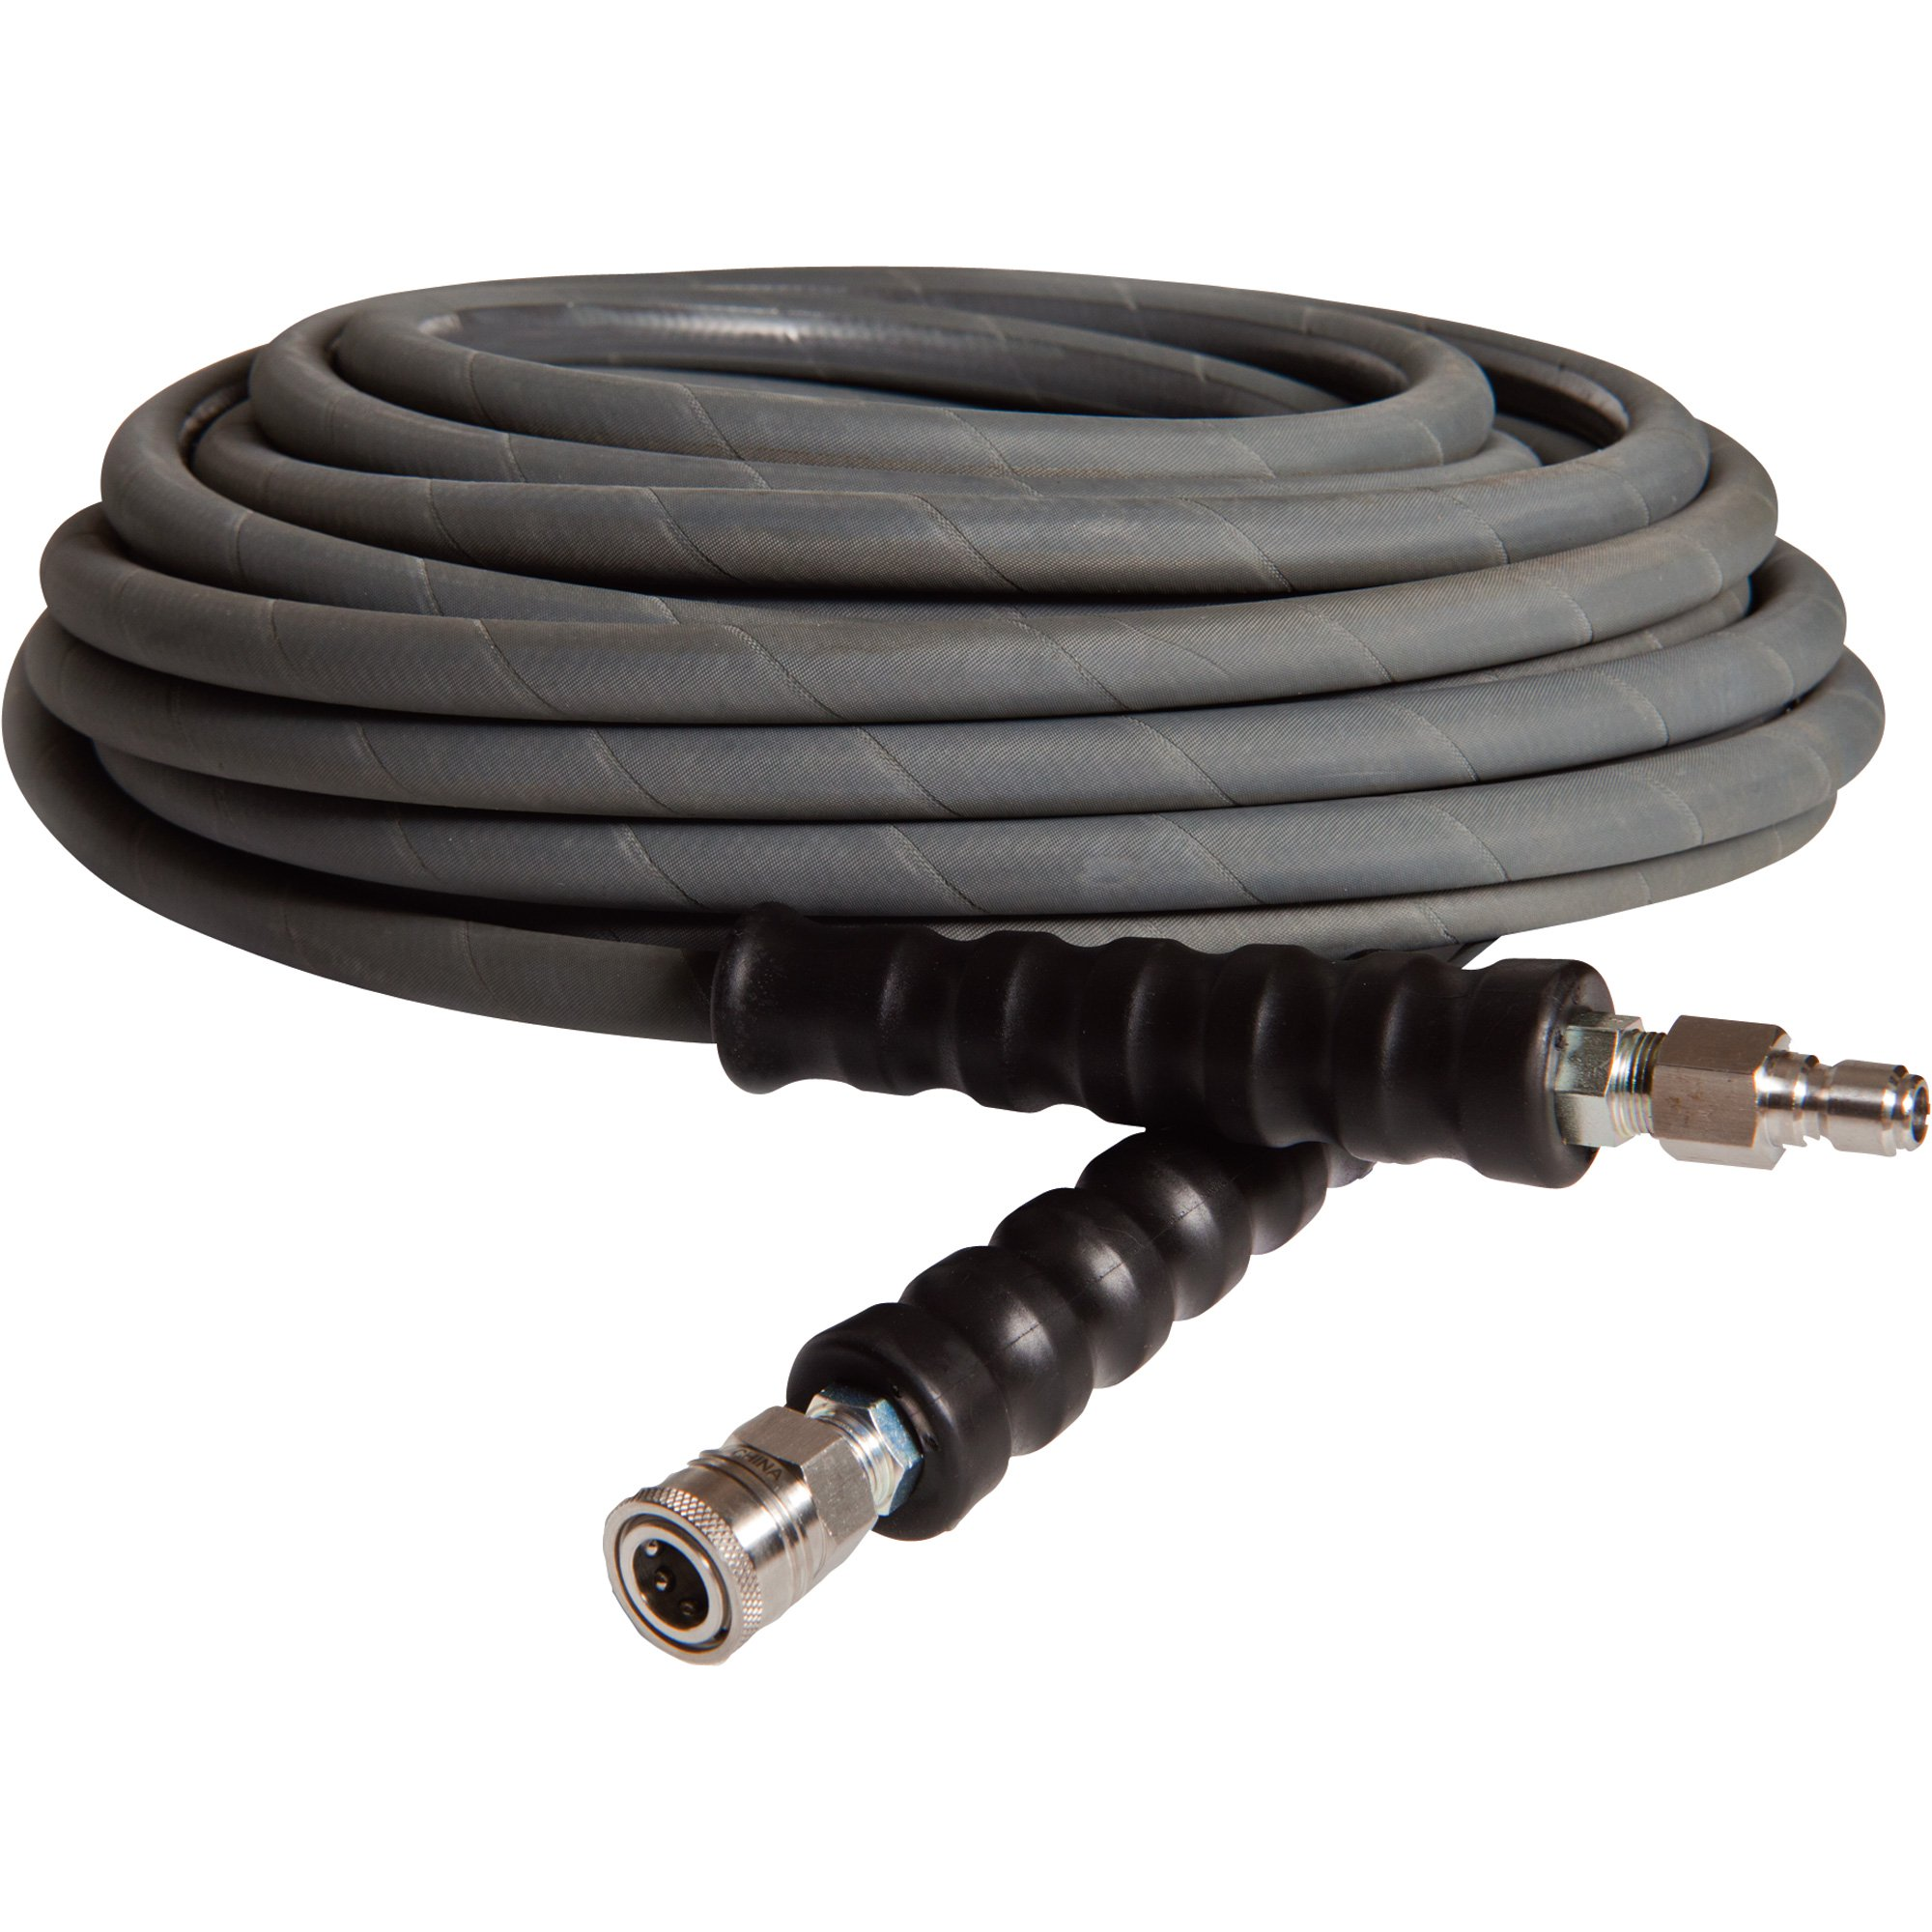 NorthStar Nonmarking Pressure Washer Hose — 6000 PSI, 100ft. x 3/8in - 42953- 989401982